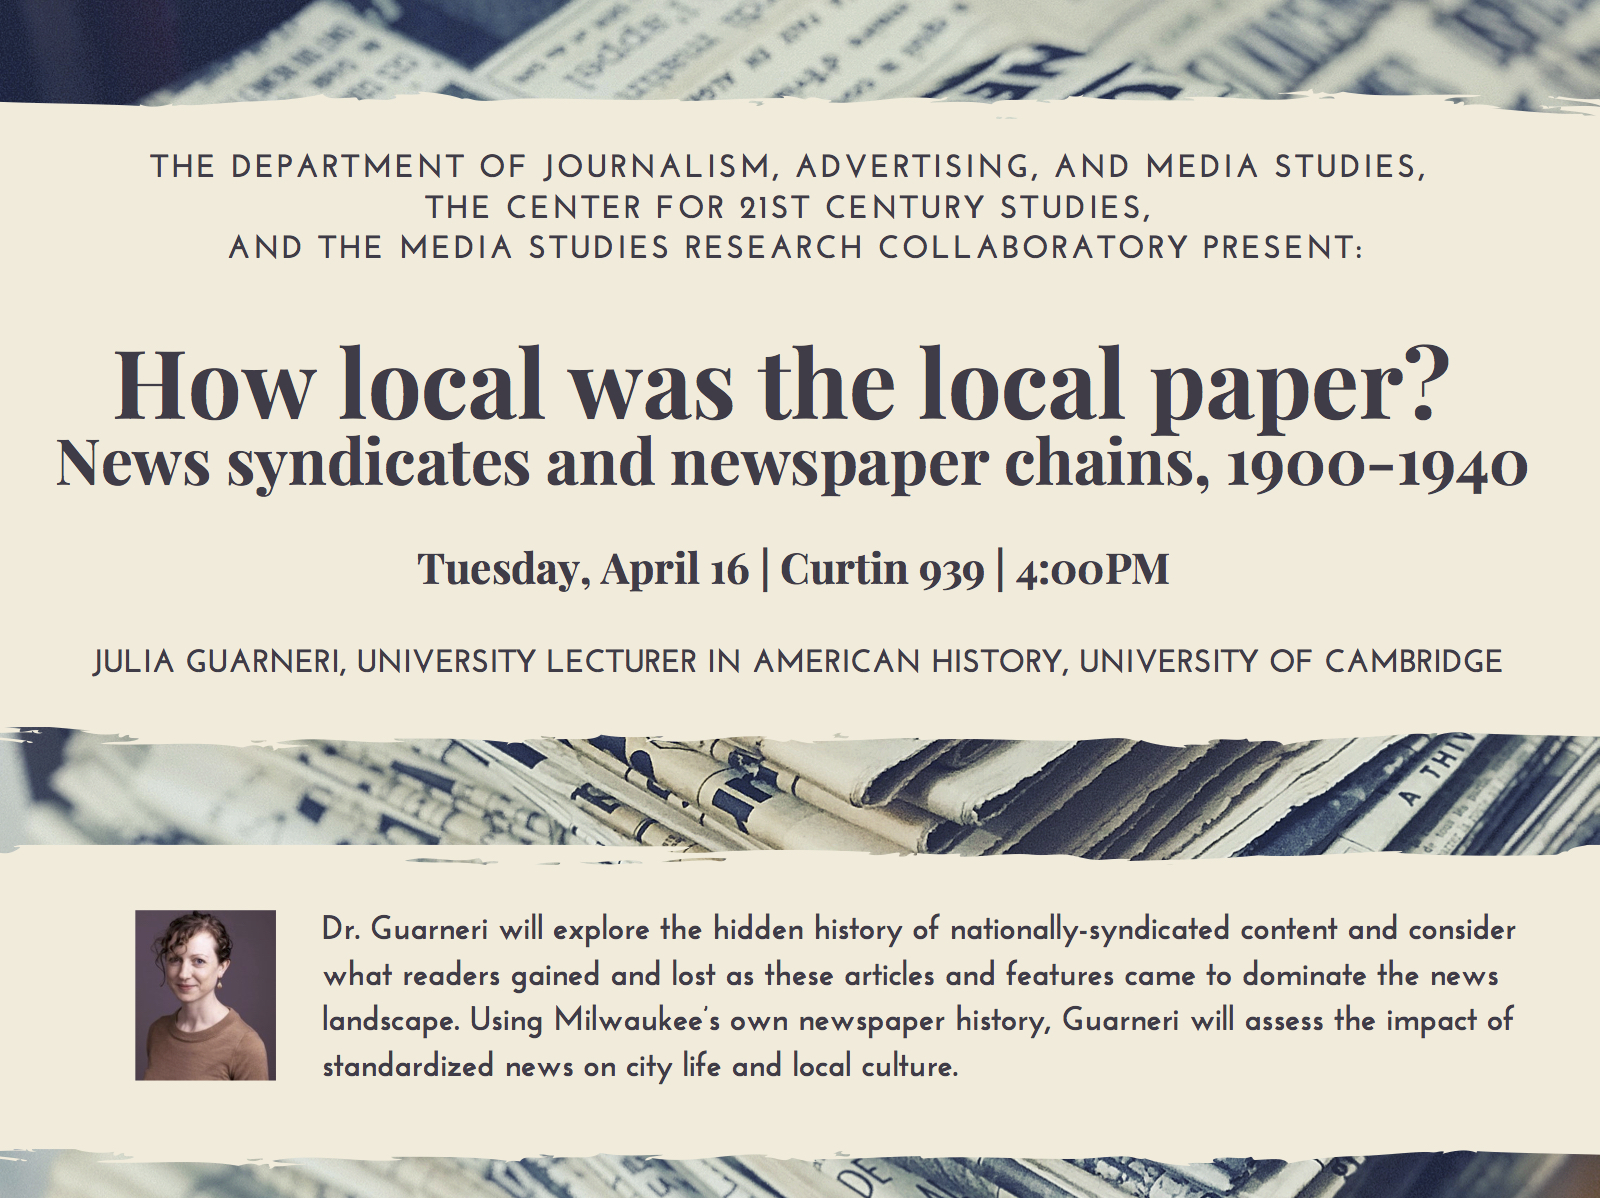 How Local Was the Local Paper? Event flyer